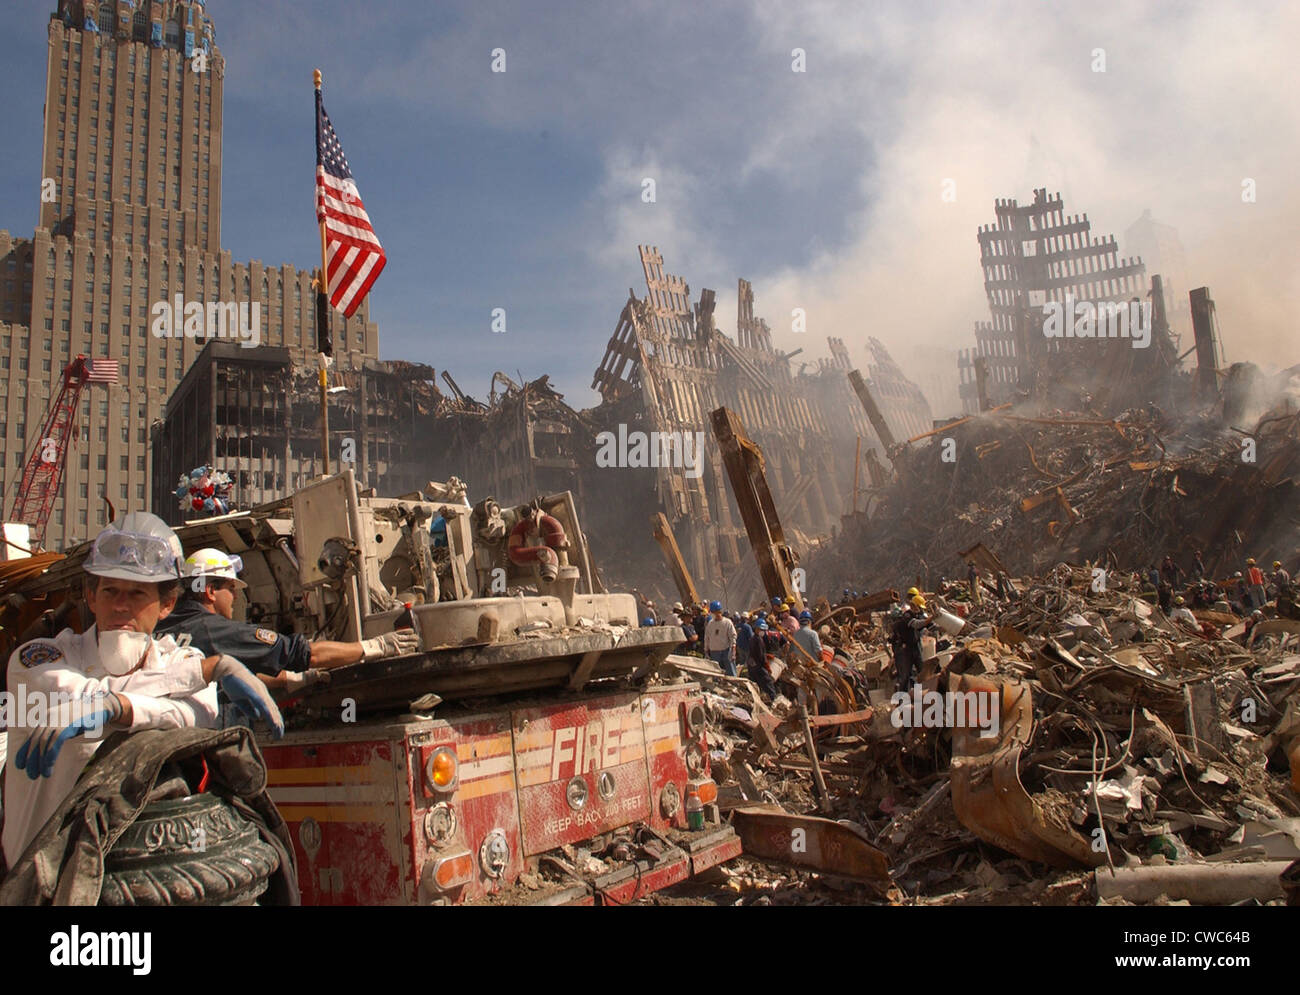 Urban search and rescue teams inspect the wreckage at the World Trade Center two days after the 9-11 terrorist attacks - Stock Image